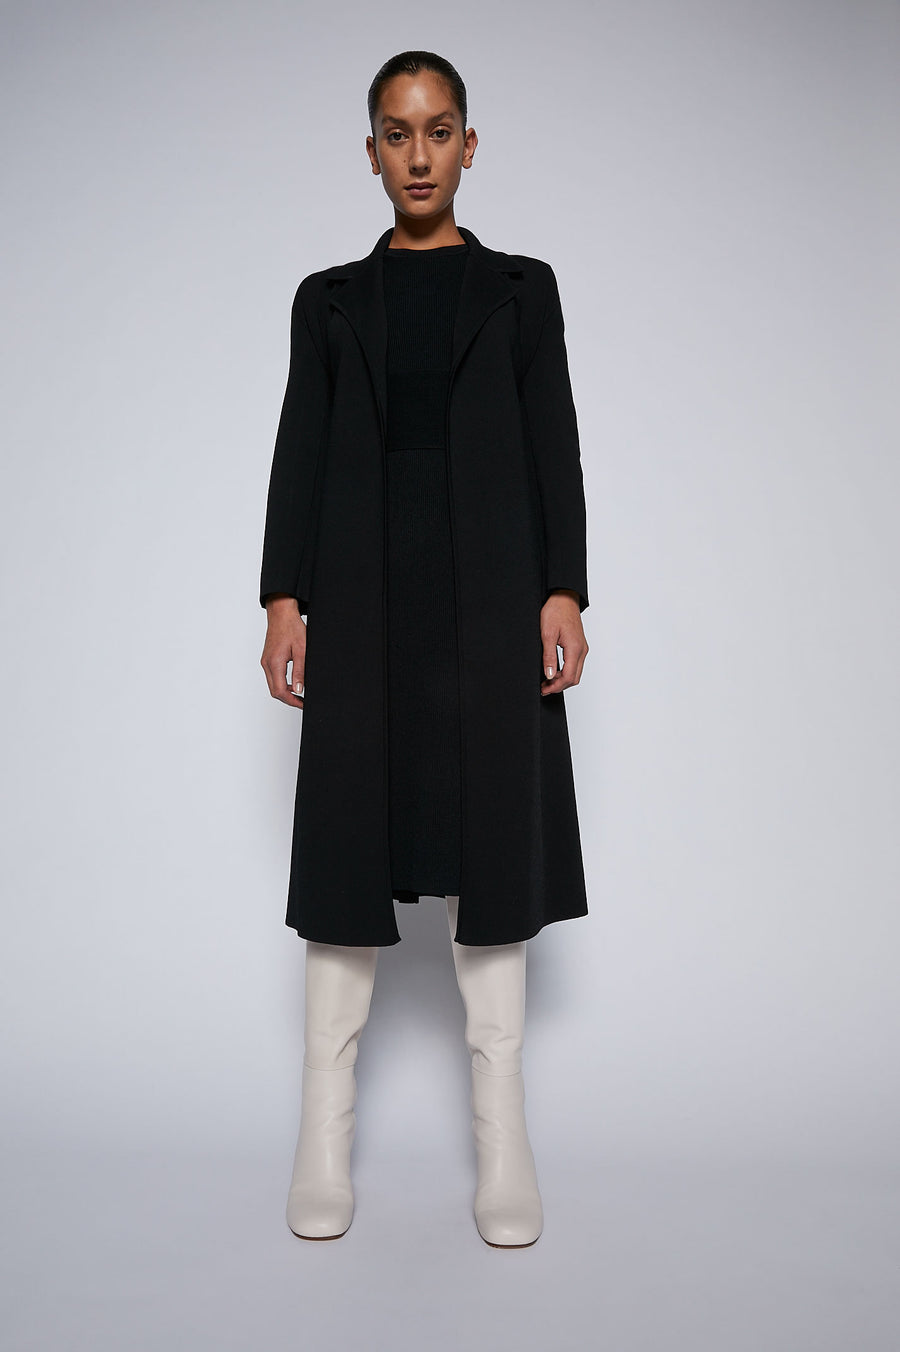 Crepe Knit Belted Coat Black - Scanlan Theodore